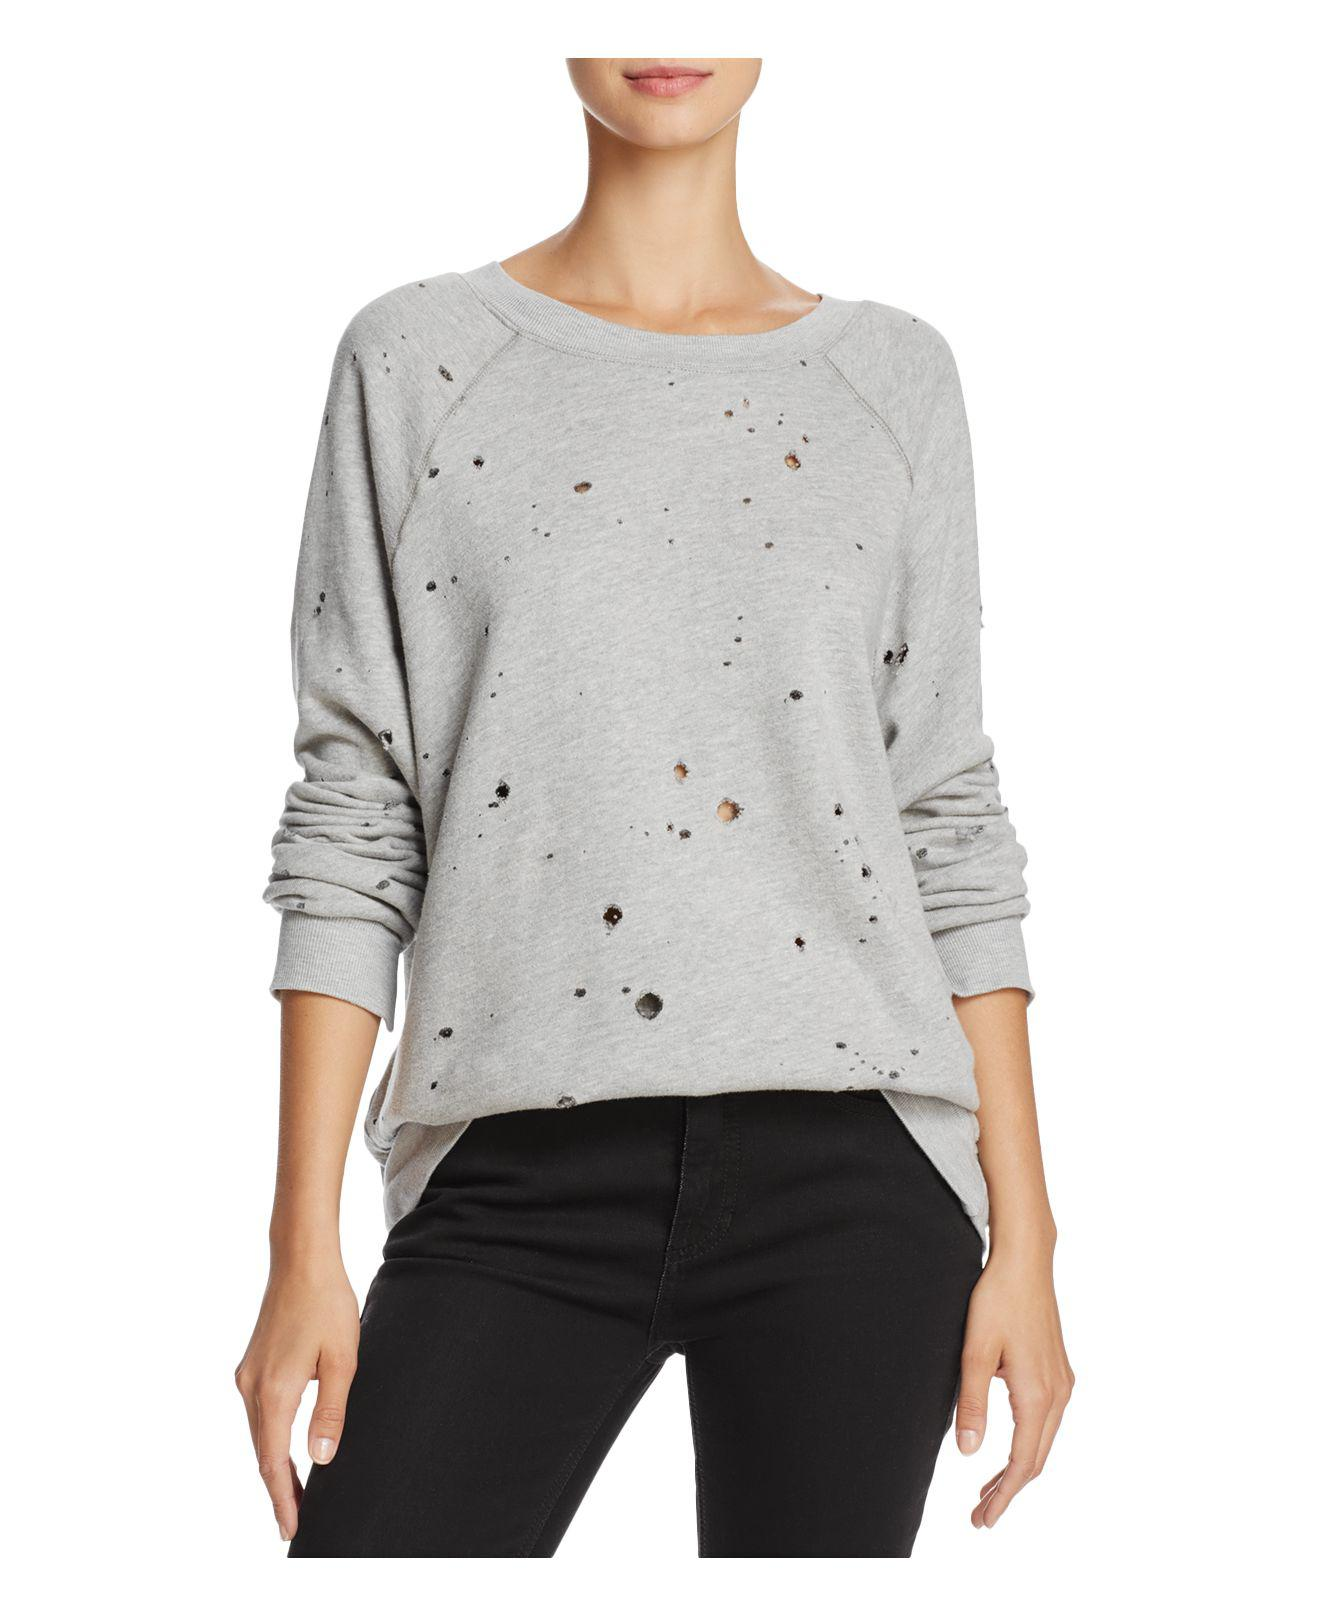 9df4c193 Project Social T My Generation Distressed Sweatshirt in Gray - Lyst